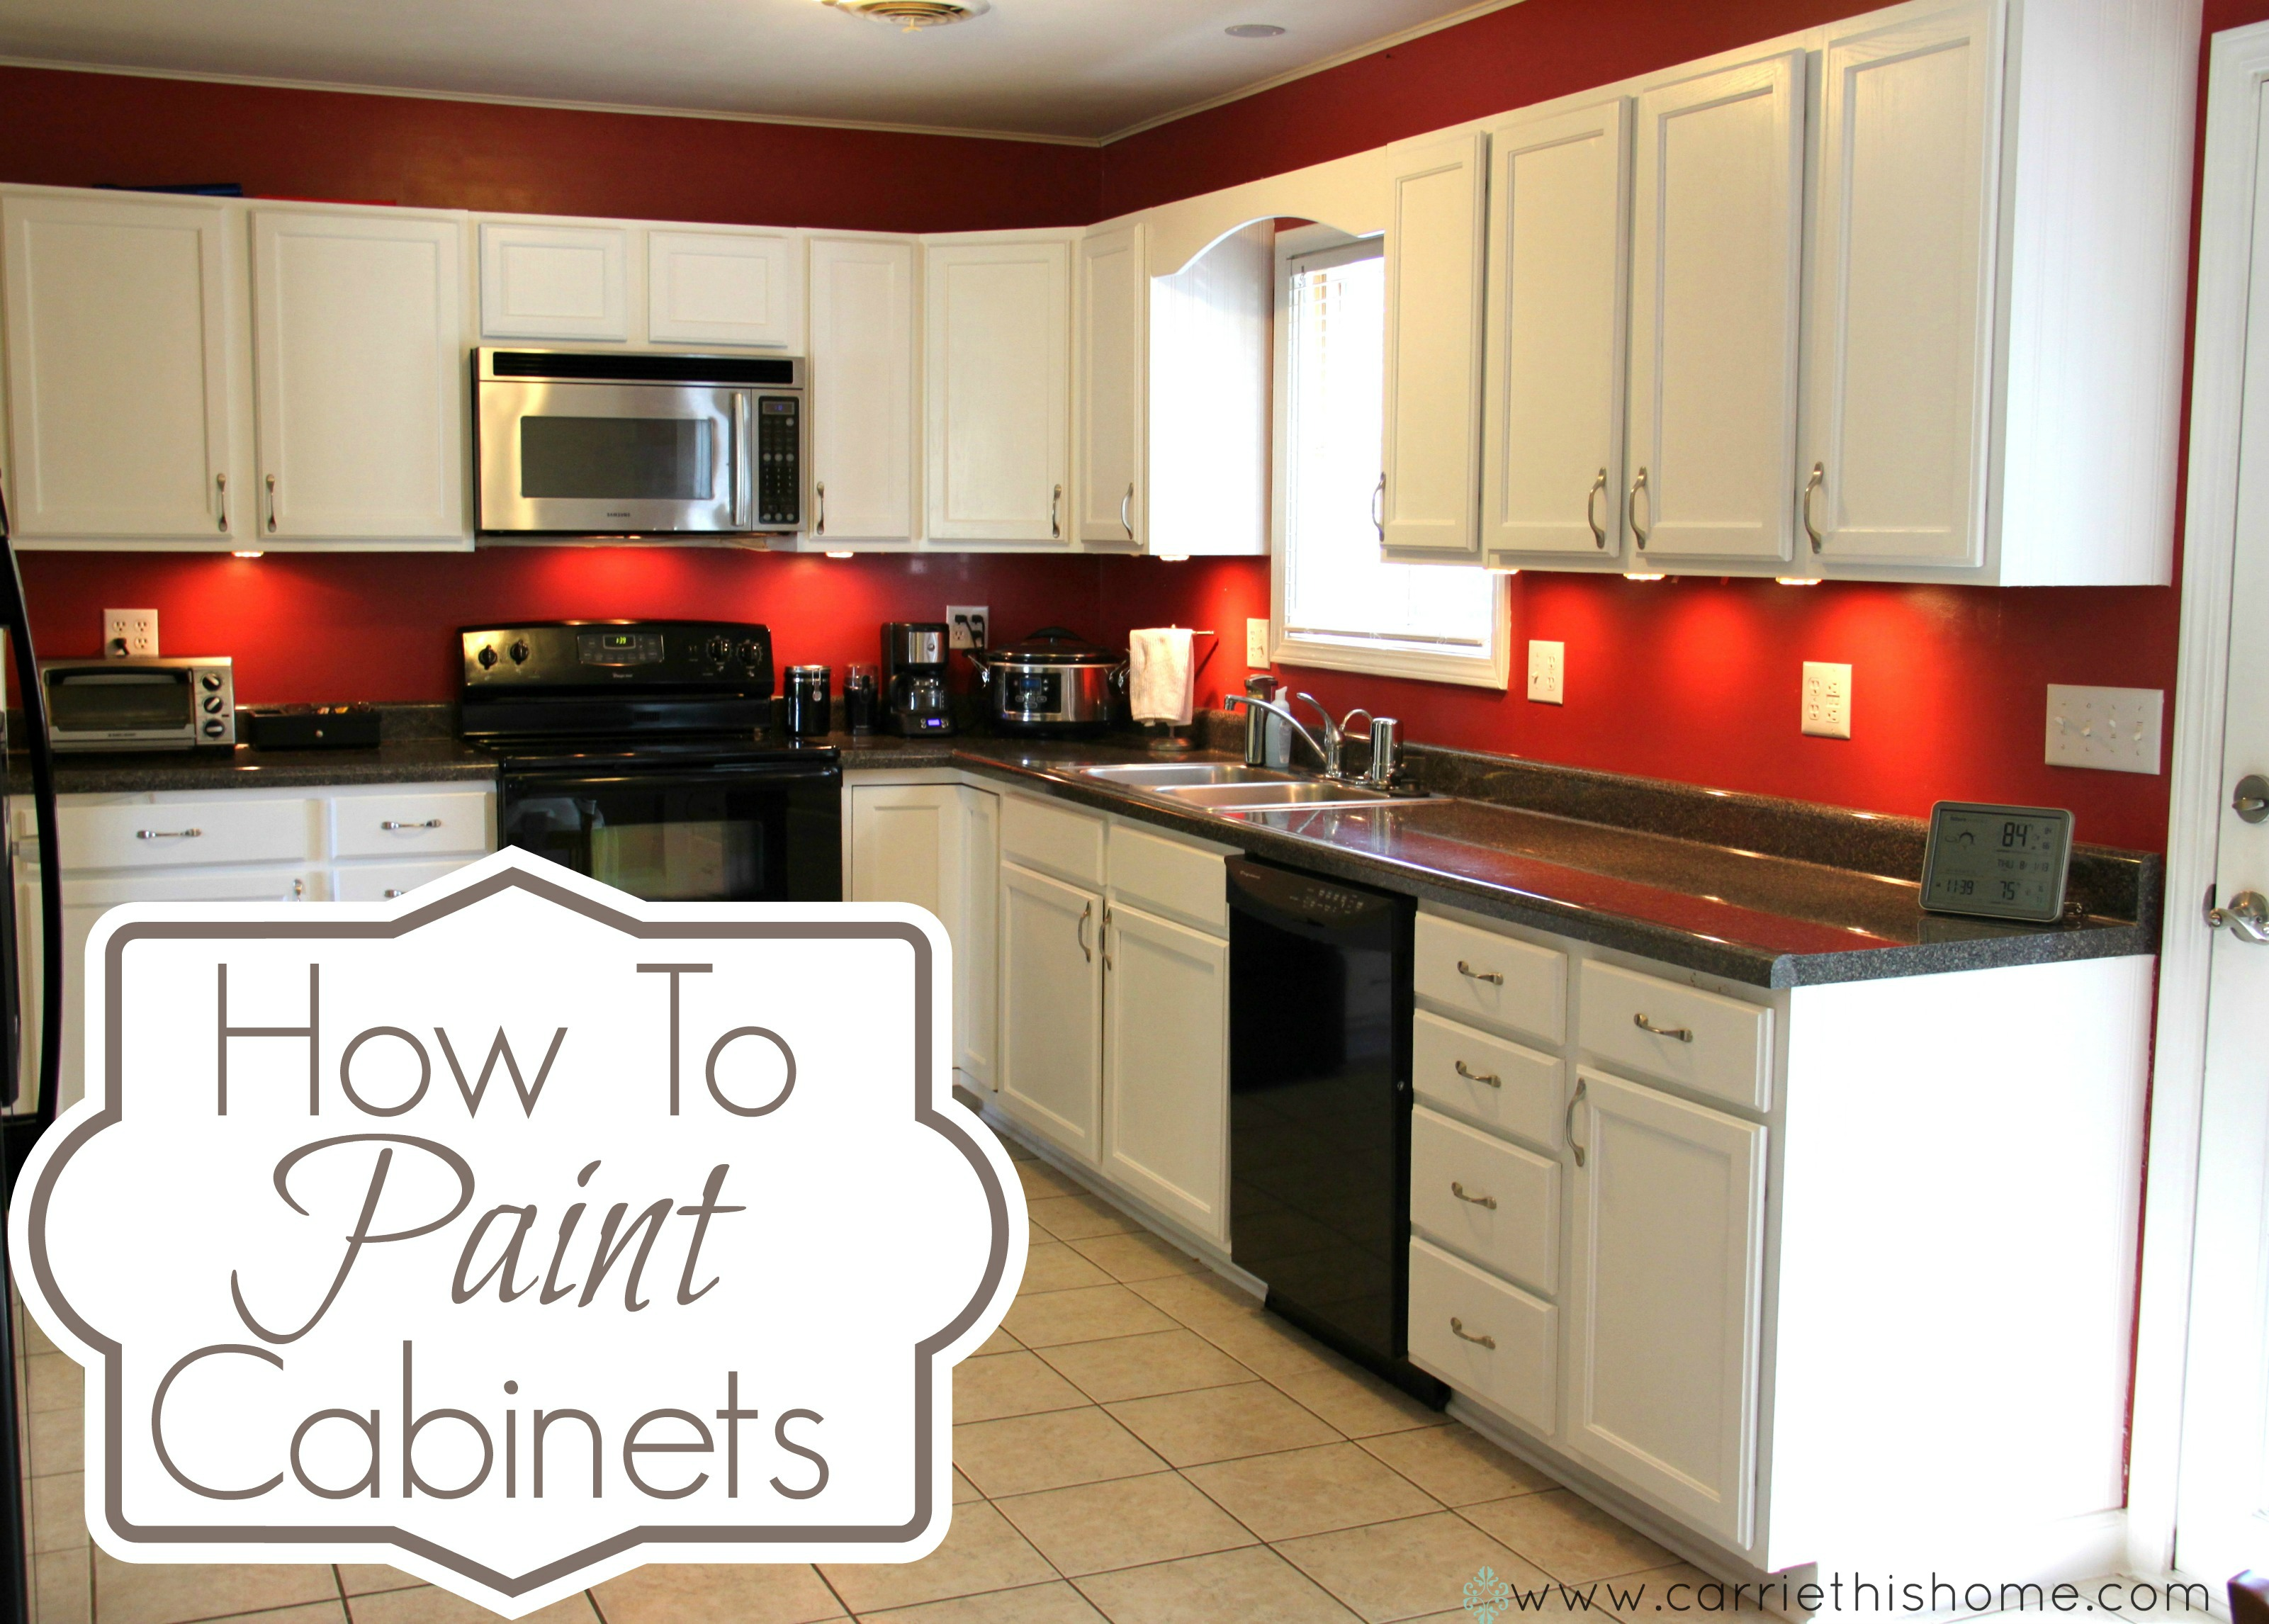 How To Paint Kitchen Cabinets With A Roller How To Paint Cabinets